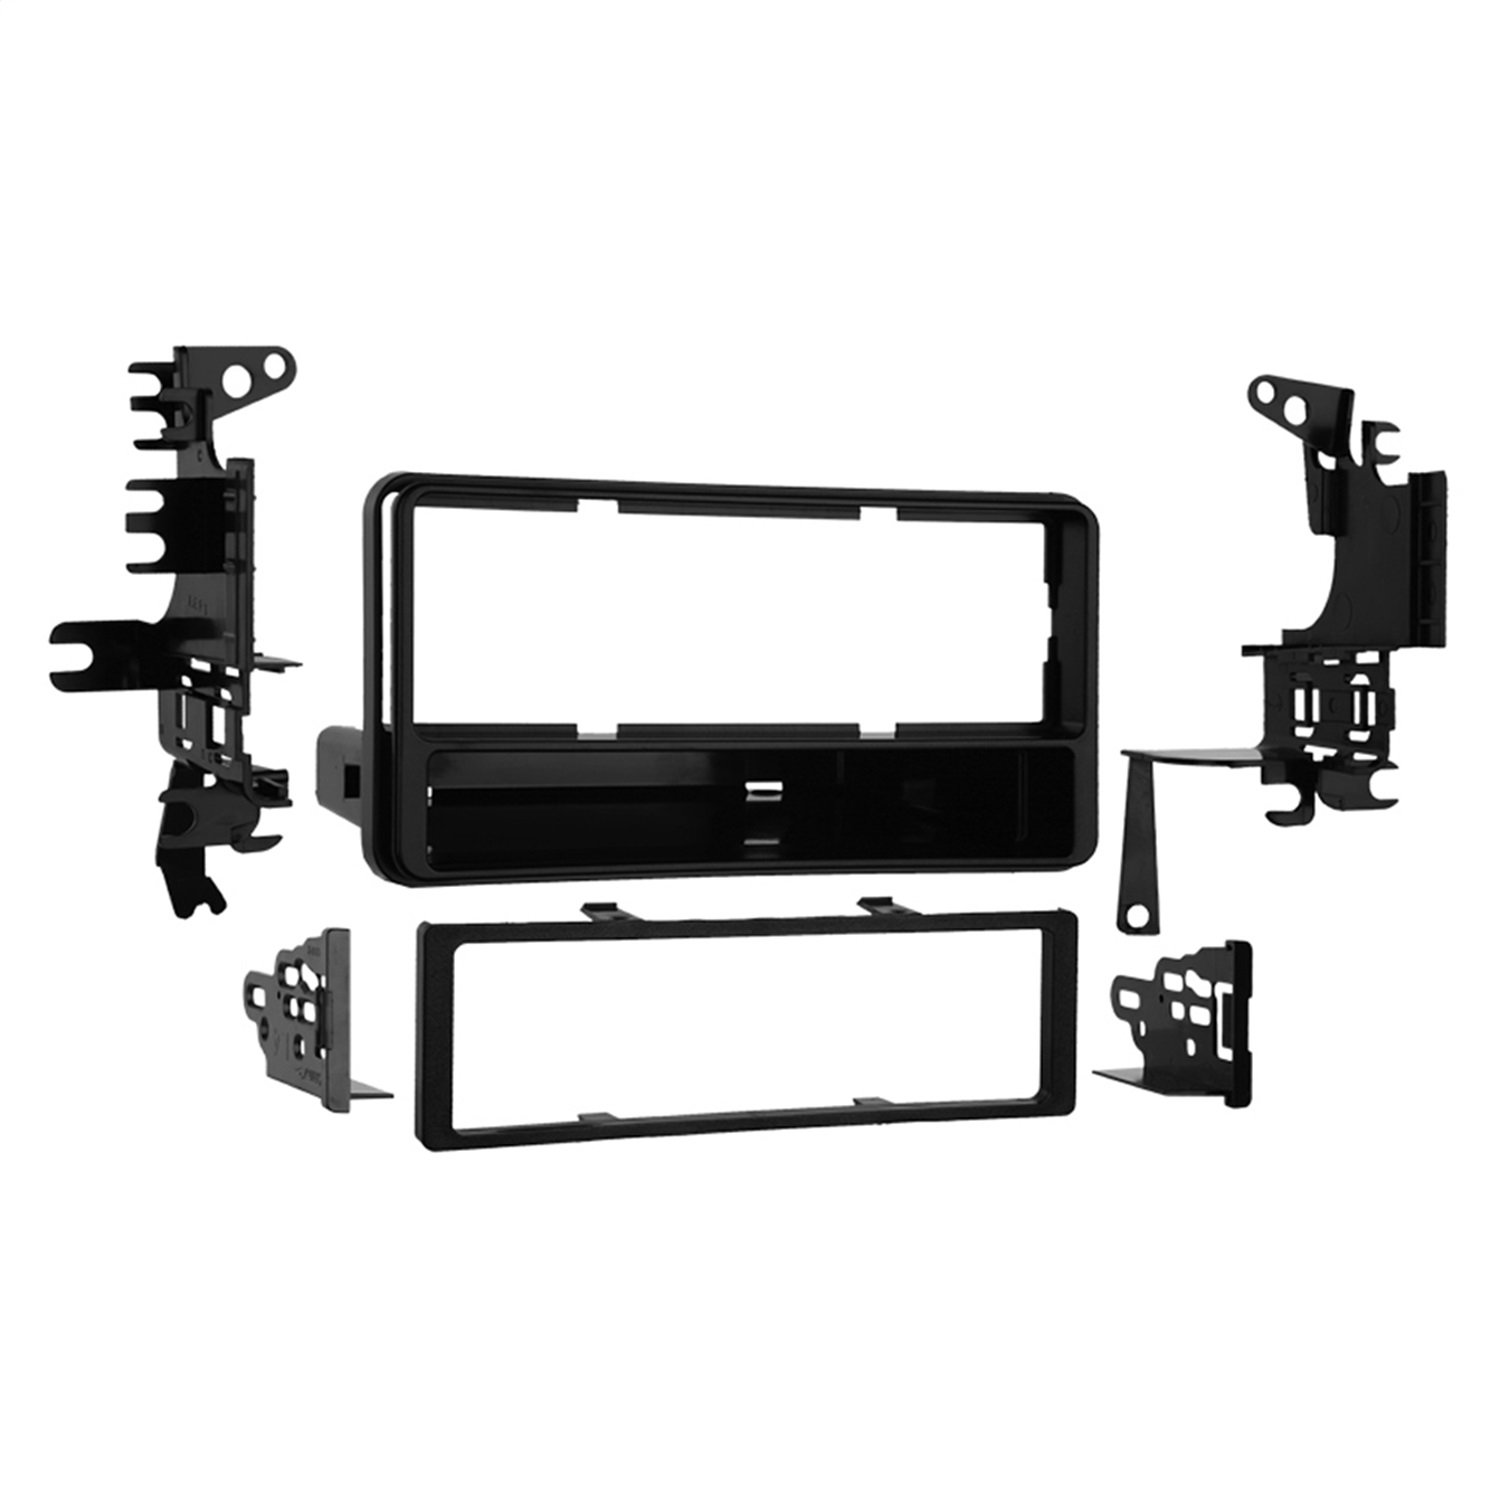 Metra 99-8202 Dash Kit For Toyota Multikit00-05